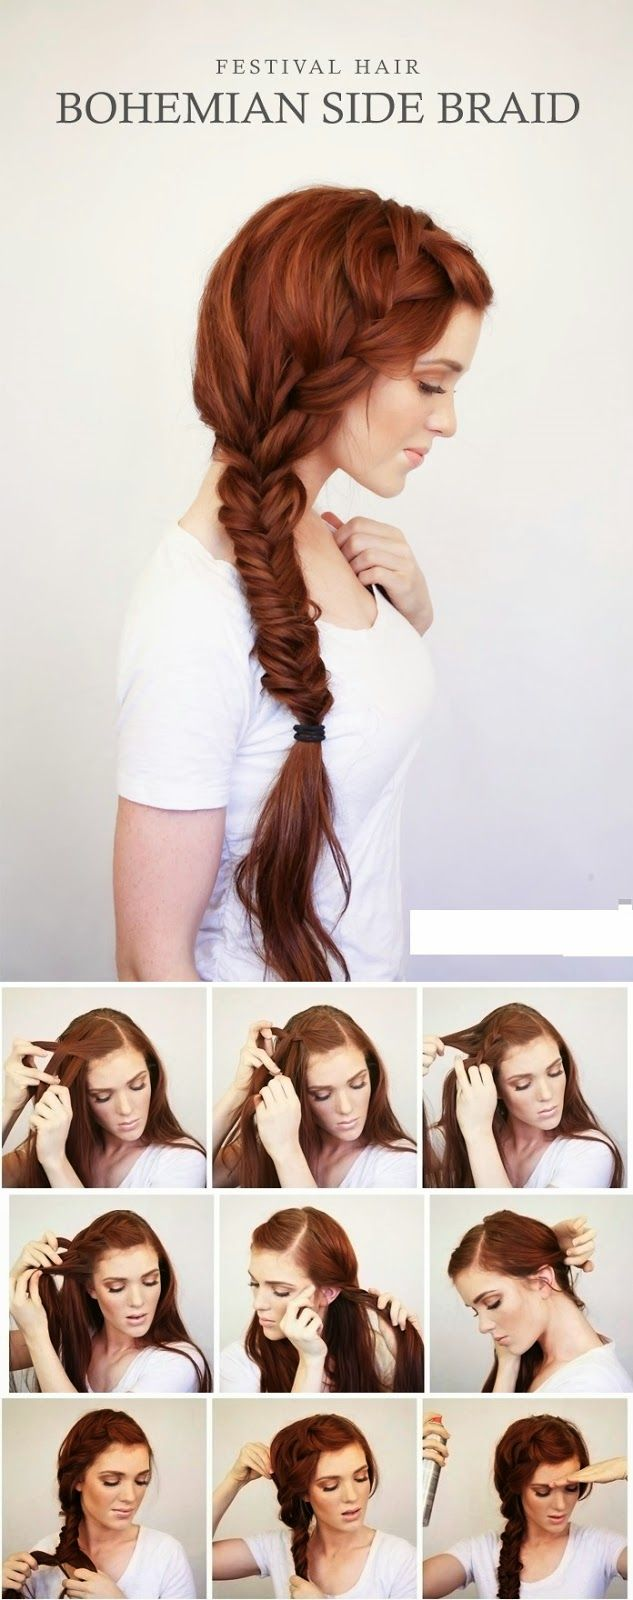 Teenage Fashion Blog: BOHEMIAN SIDE BRAID FESTIVAL HAIR TUTORIAL